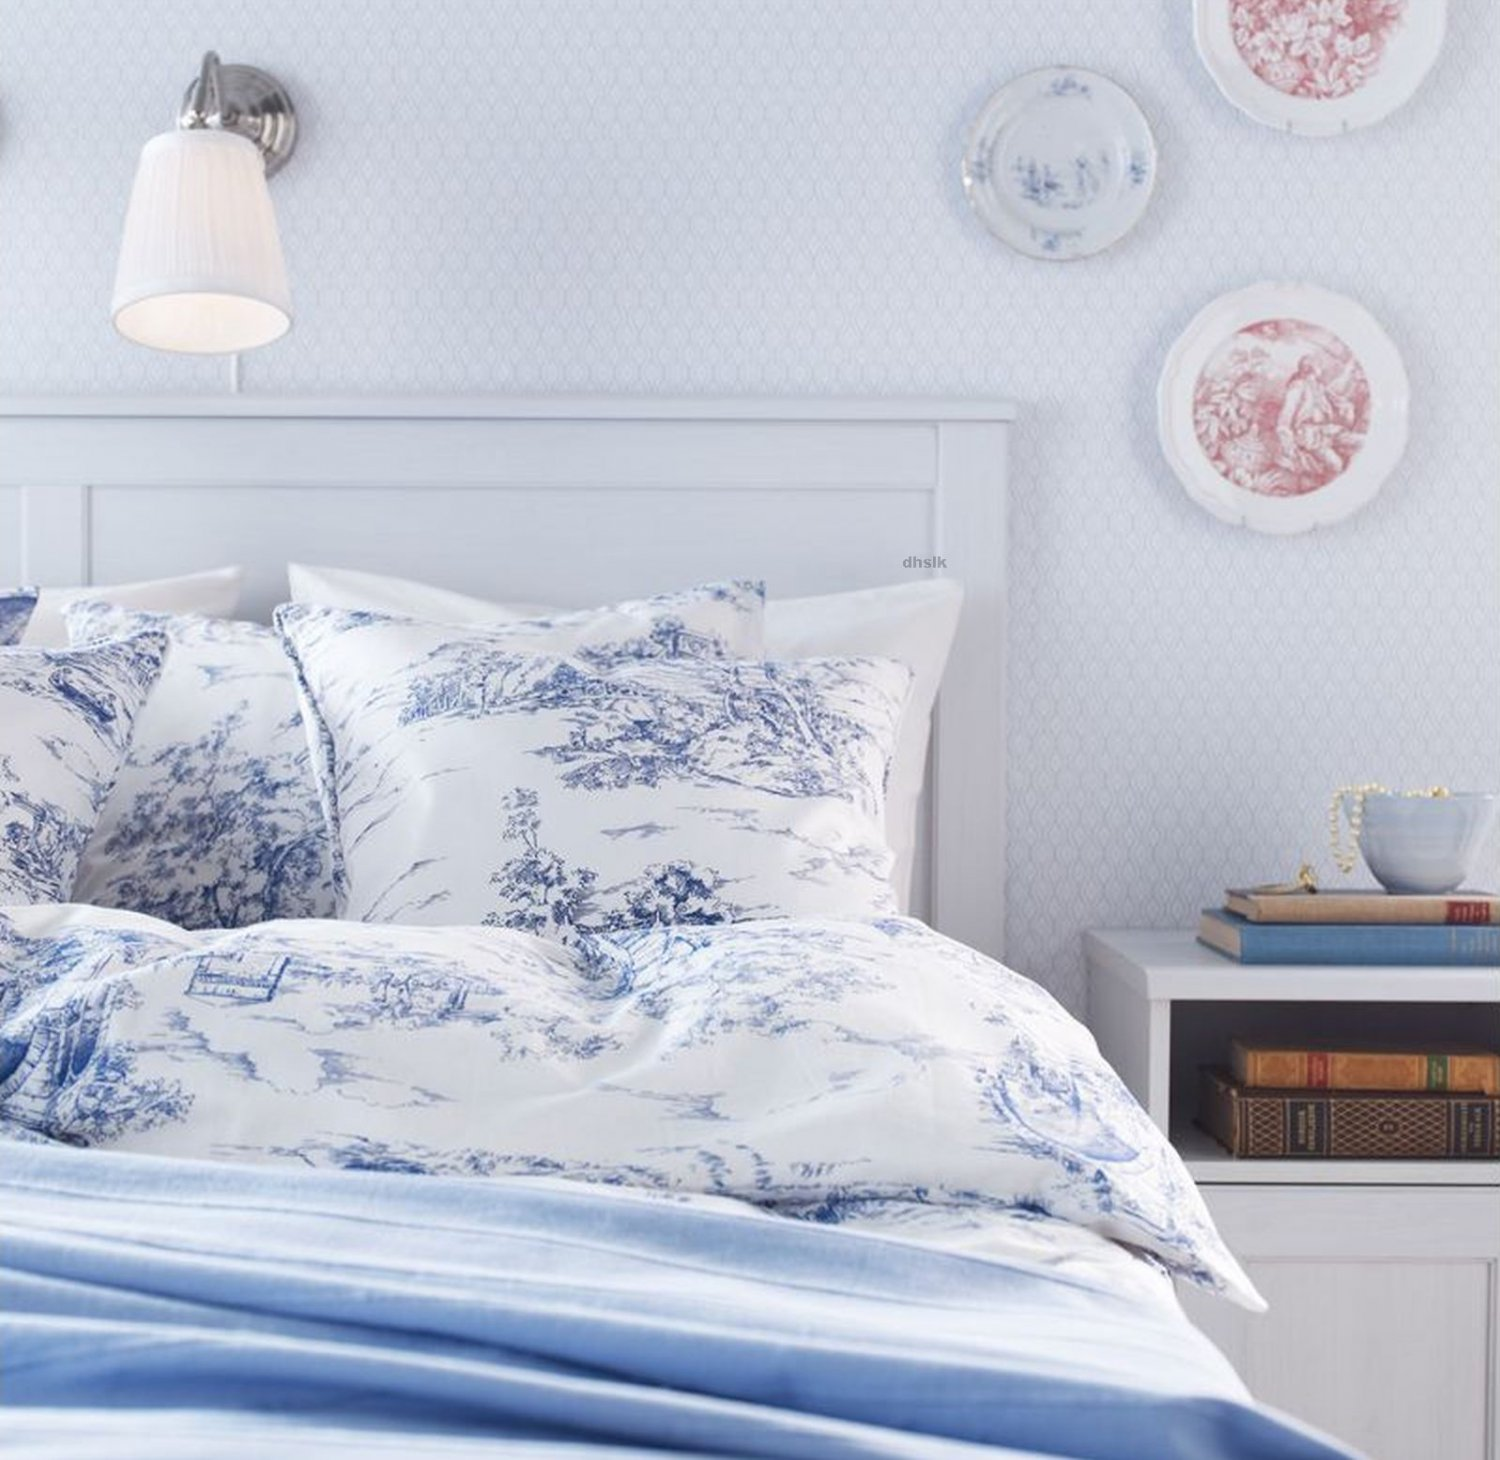 Ikea Doona Ikea Emmie Land Queen Duvet Cover Pillowcases Set Blue